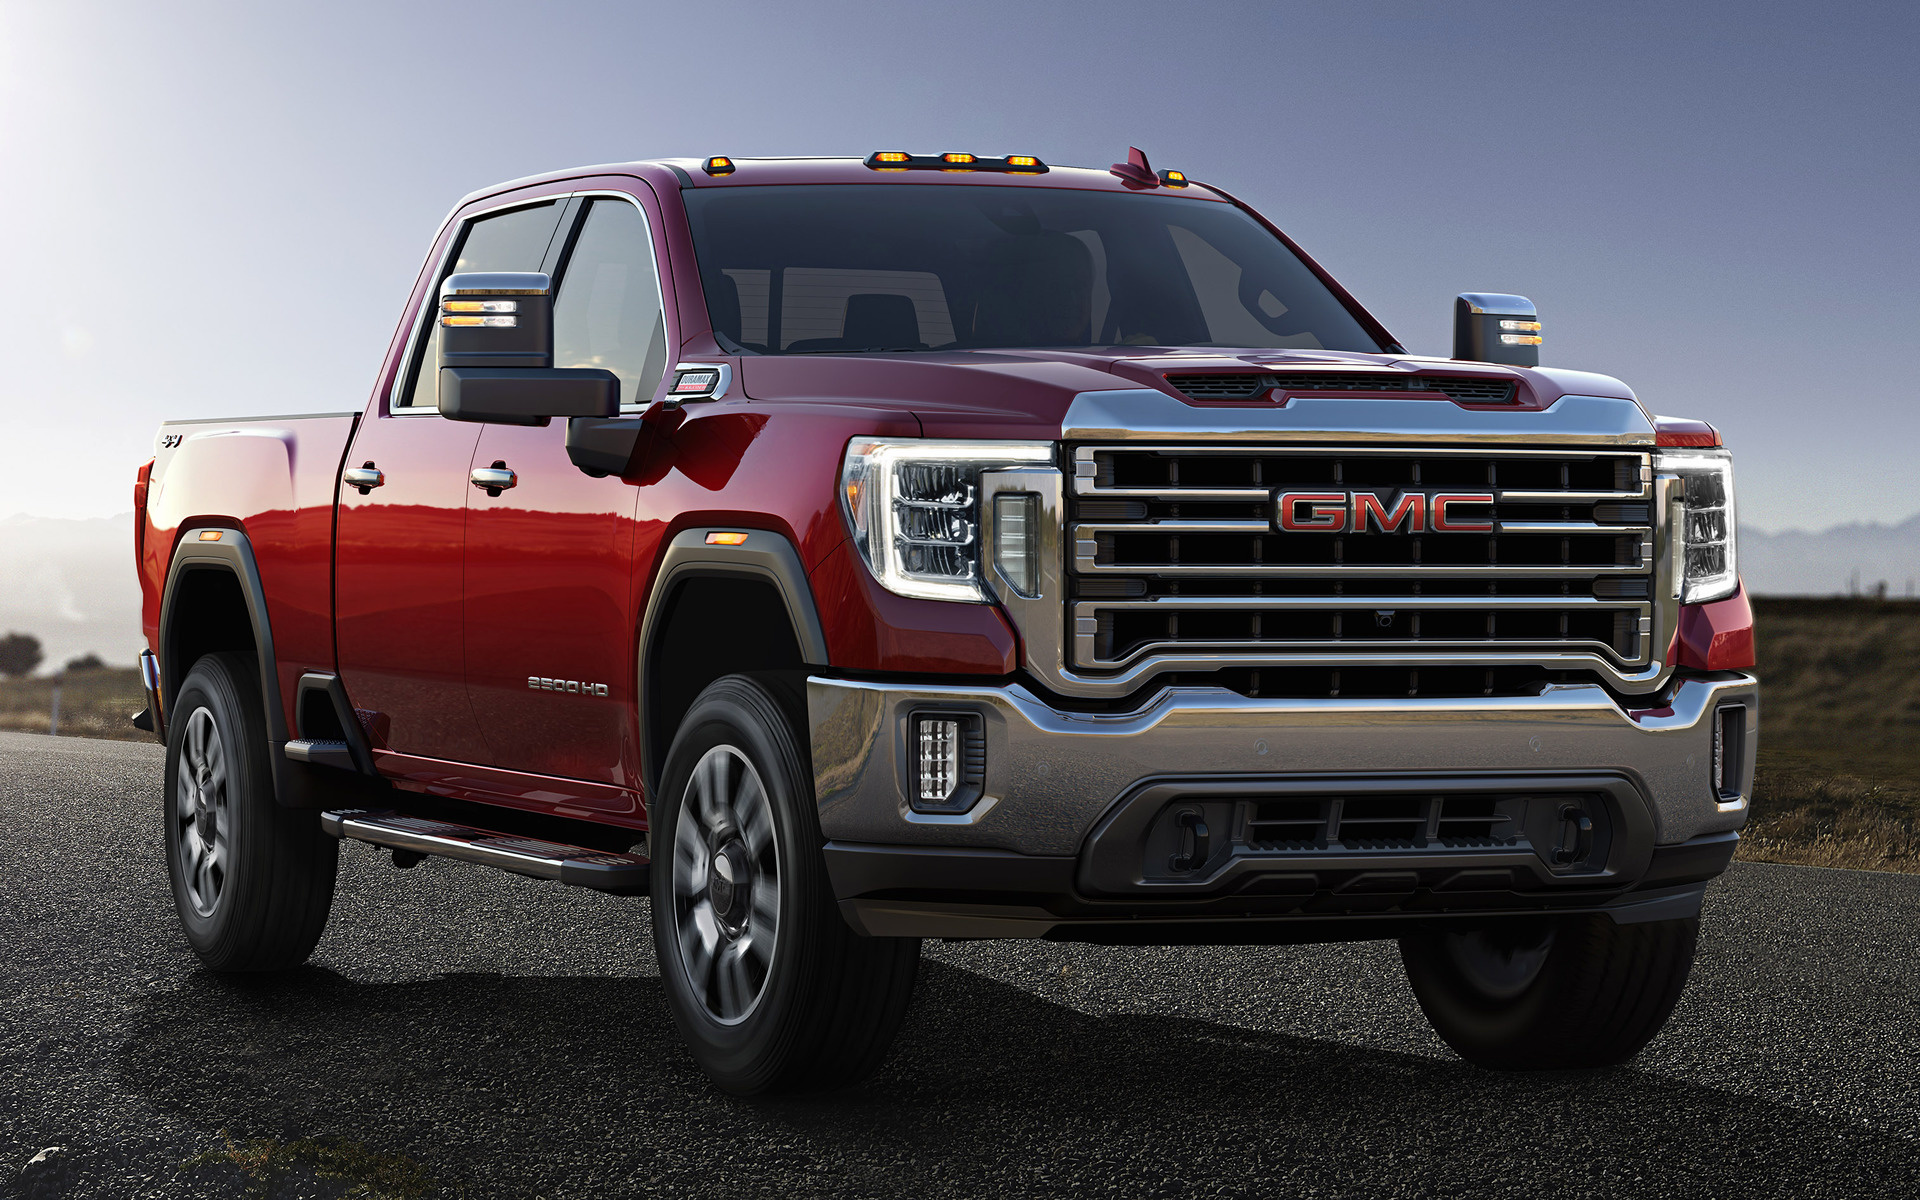 2020 GMC Sierra 2500 HD Crew Cab - Wallpapers and HD ...